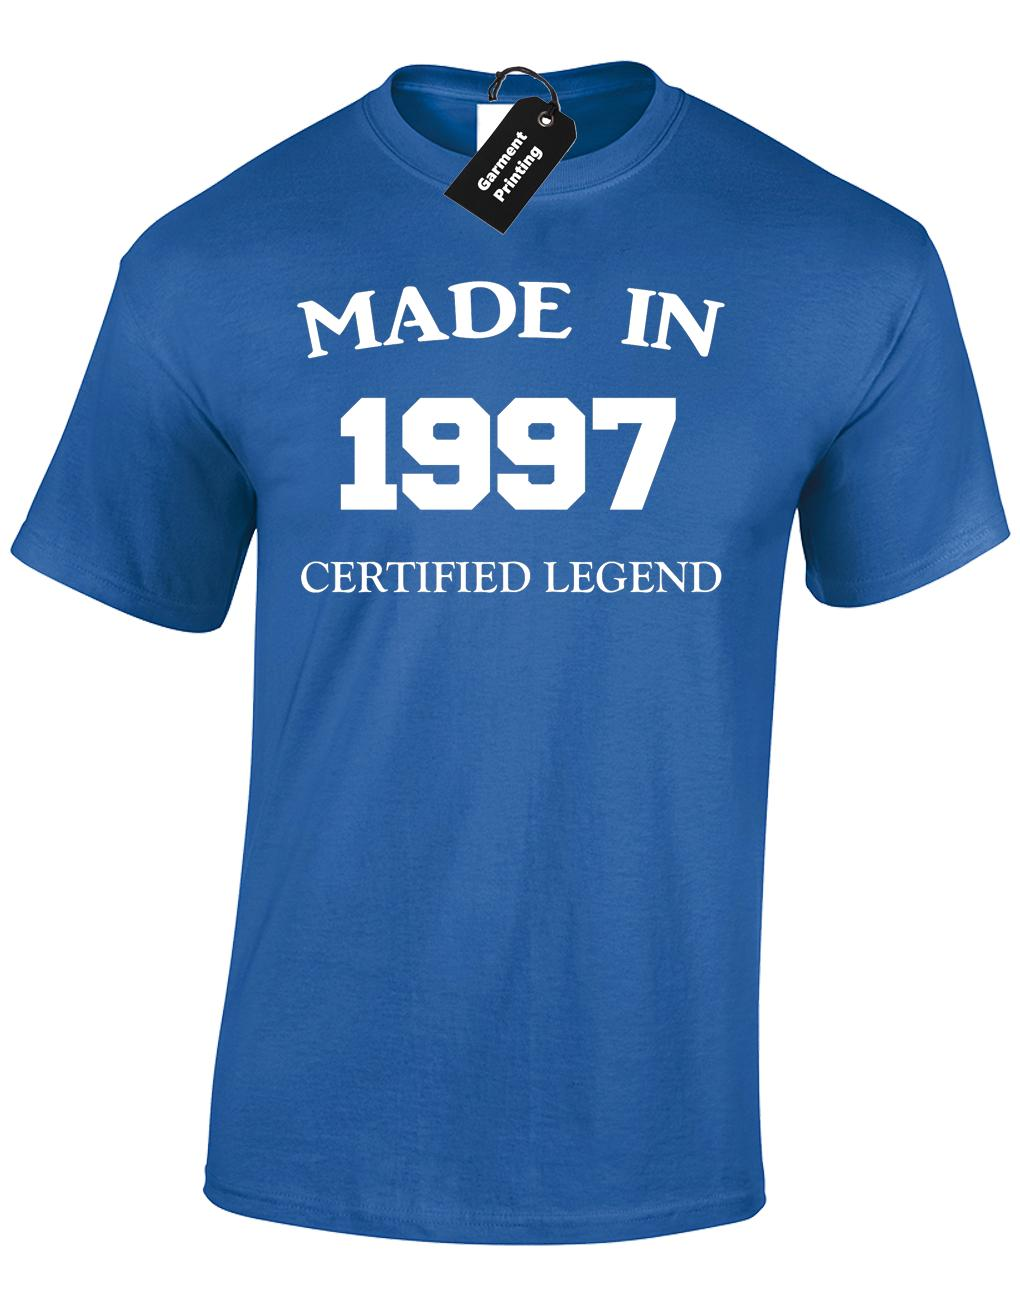 MADE IN 1997 MENS T SHIRT FUNNY 21ST BIRTHDAY GIFT PRESENT IDEA MUM DAD DESIGN 2018 Funny Tee 100 Cotton Cool Lovely Summer Shirt On Buy Shirts From